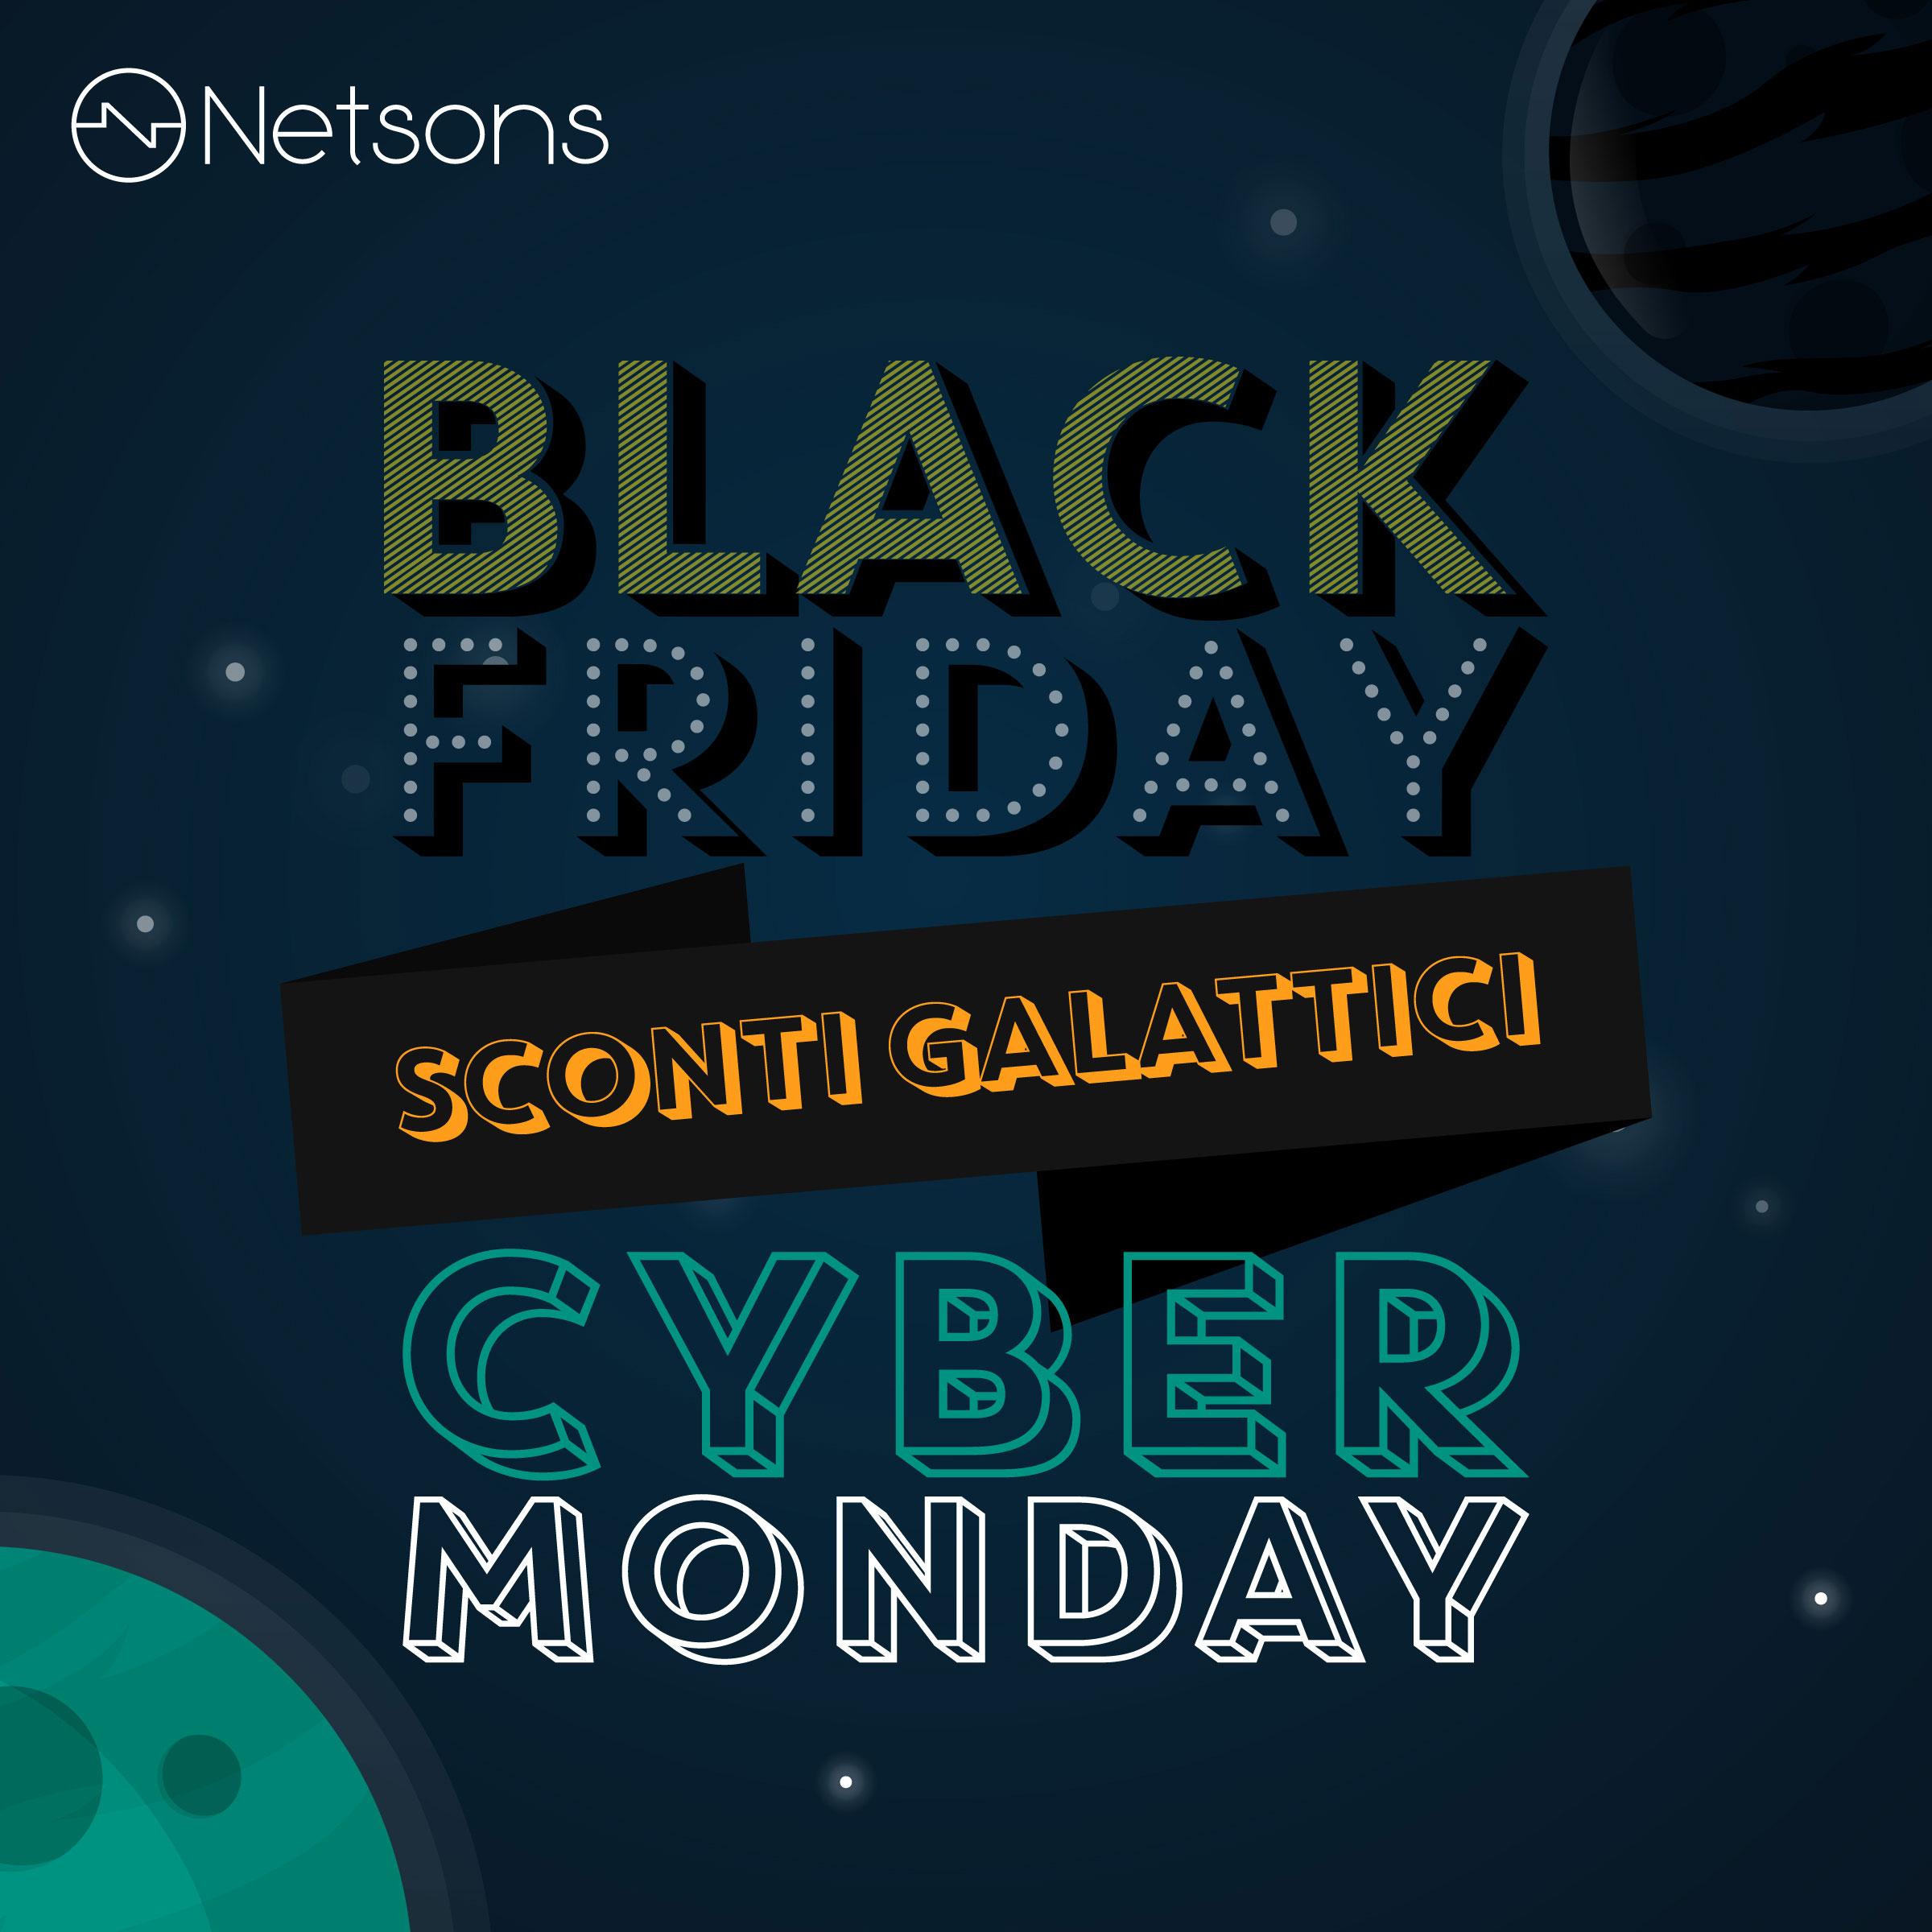 netsons black friday 2019 sconti